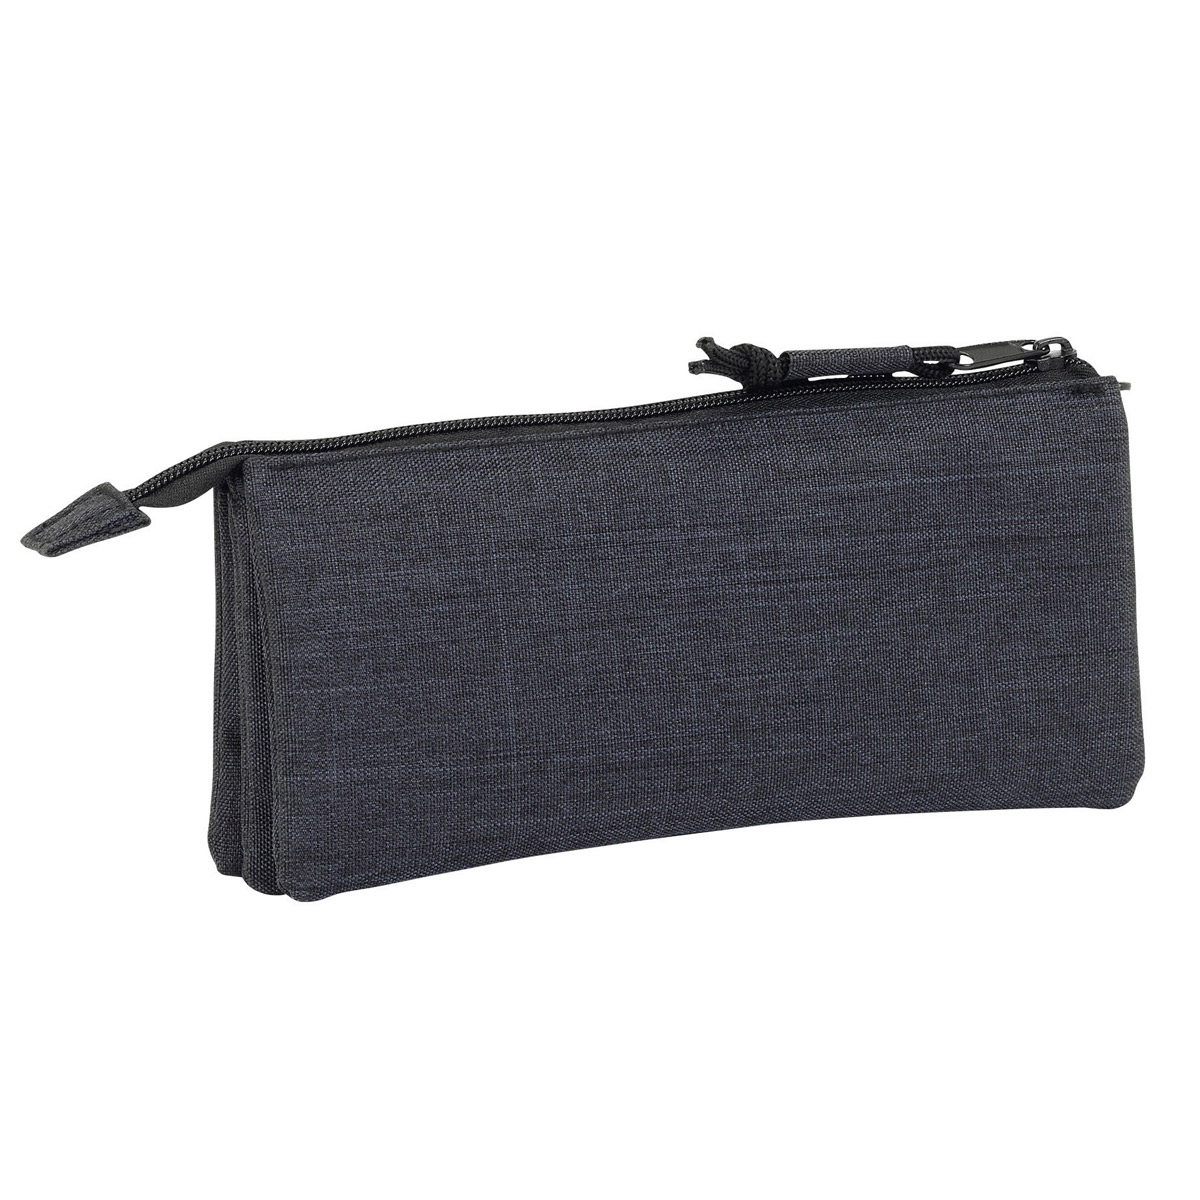 Blackfit8 Triple Pencil Case Black – image 2